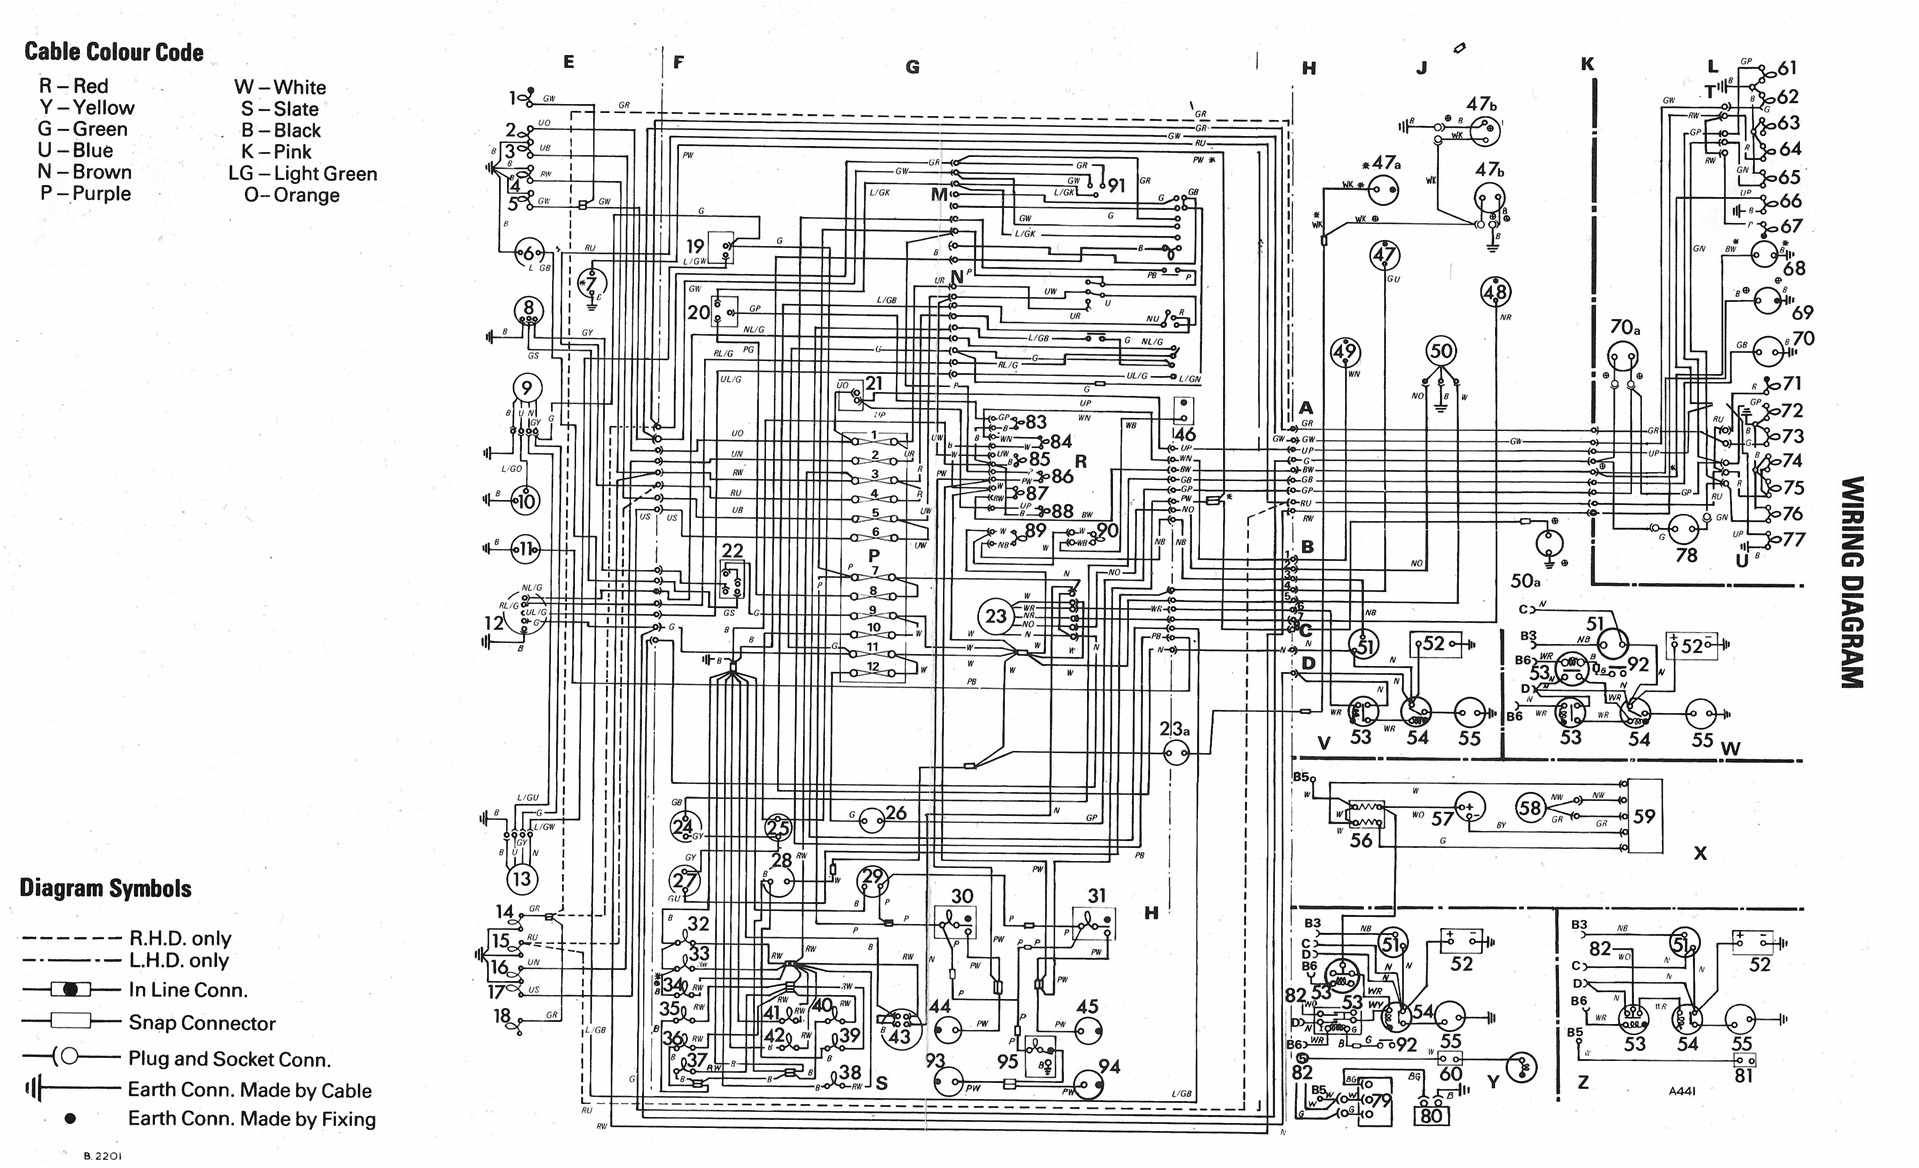 electrical wiring diagram of volkswagen golf mk1 | vw up, volkswagen golf  mk1, vw golf  pinterest